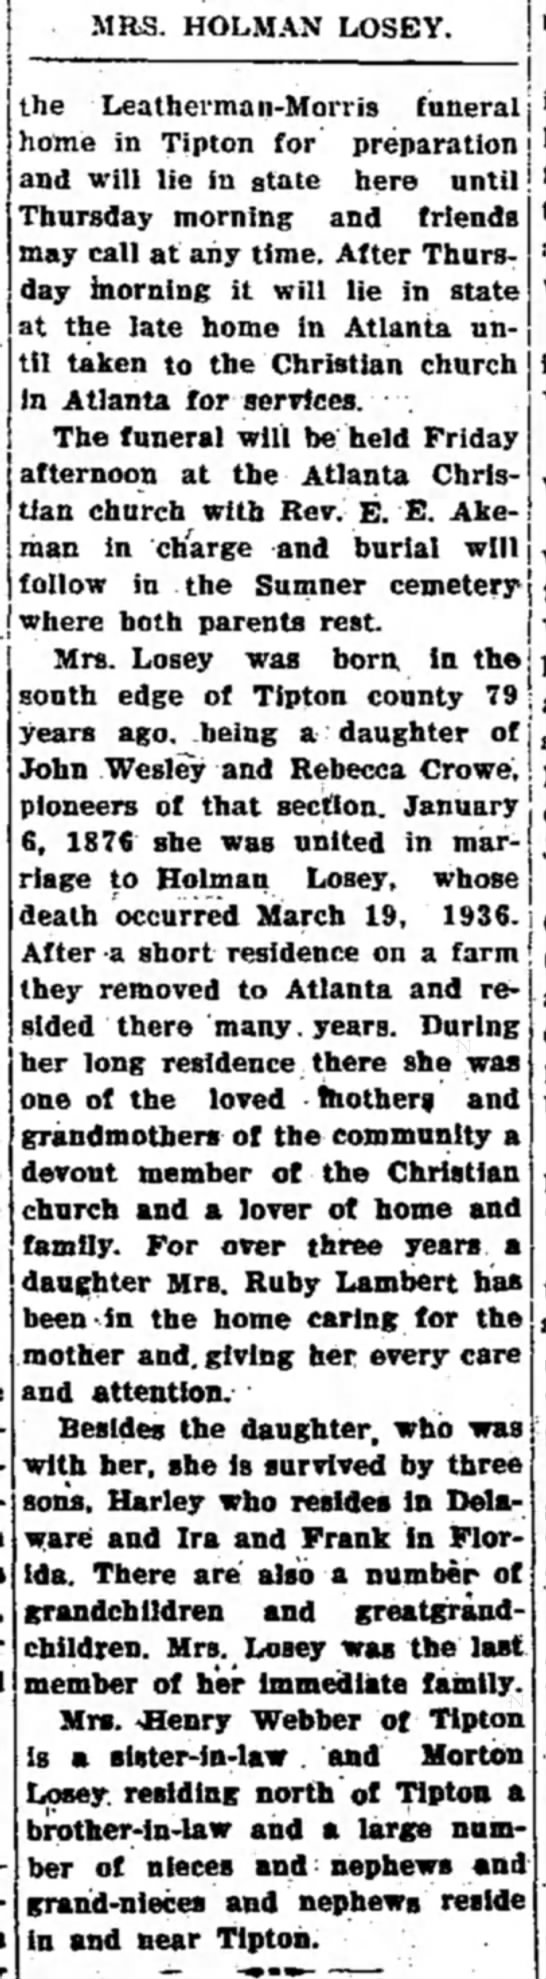 Tipton Tribune (Tipton, Indiana) July 13, 1938 pg 6 - MRS. HOLMAN LOSEY. : j the Leatherman-Morris...